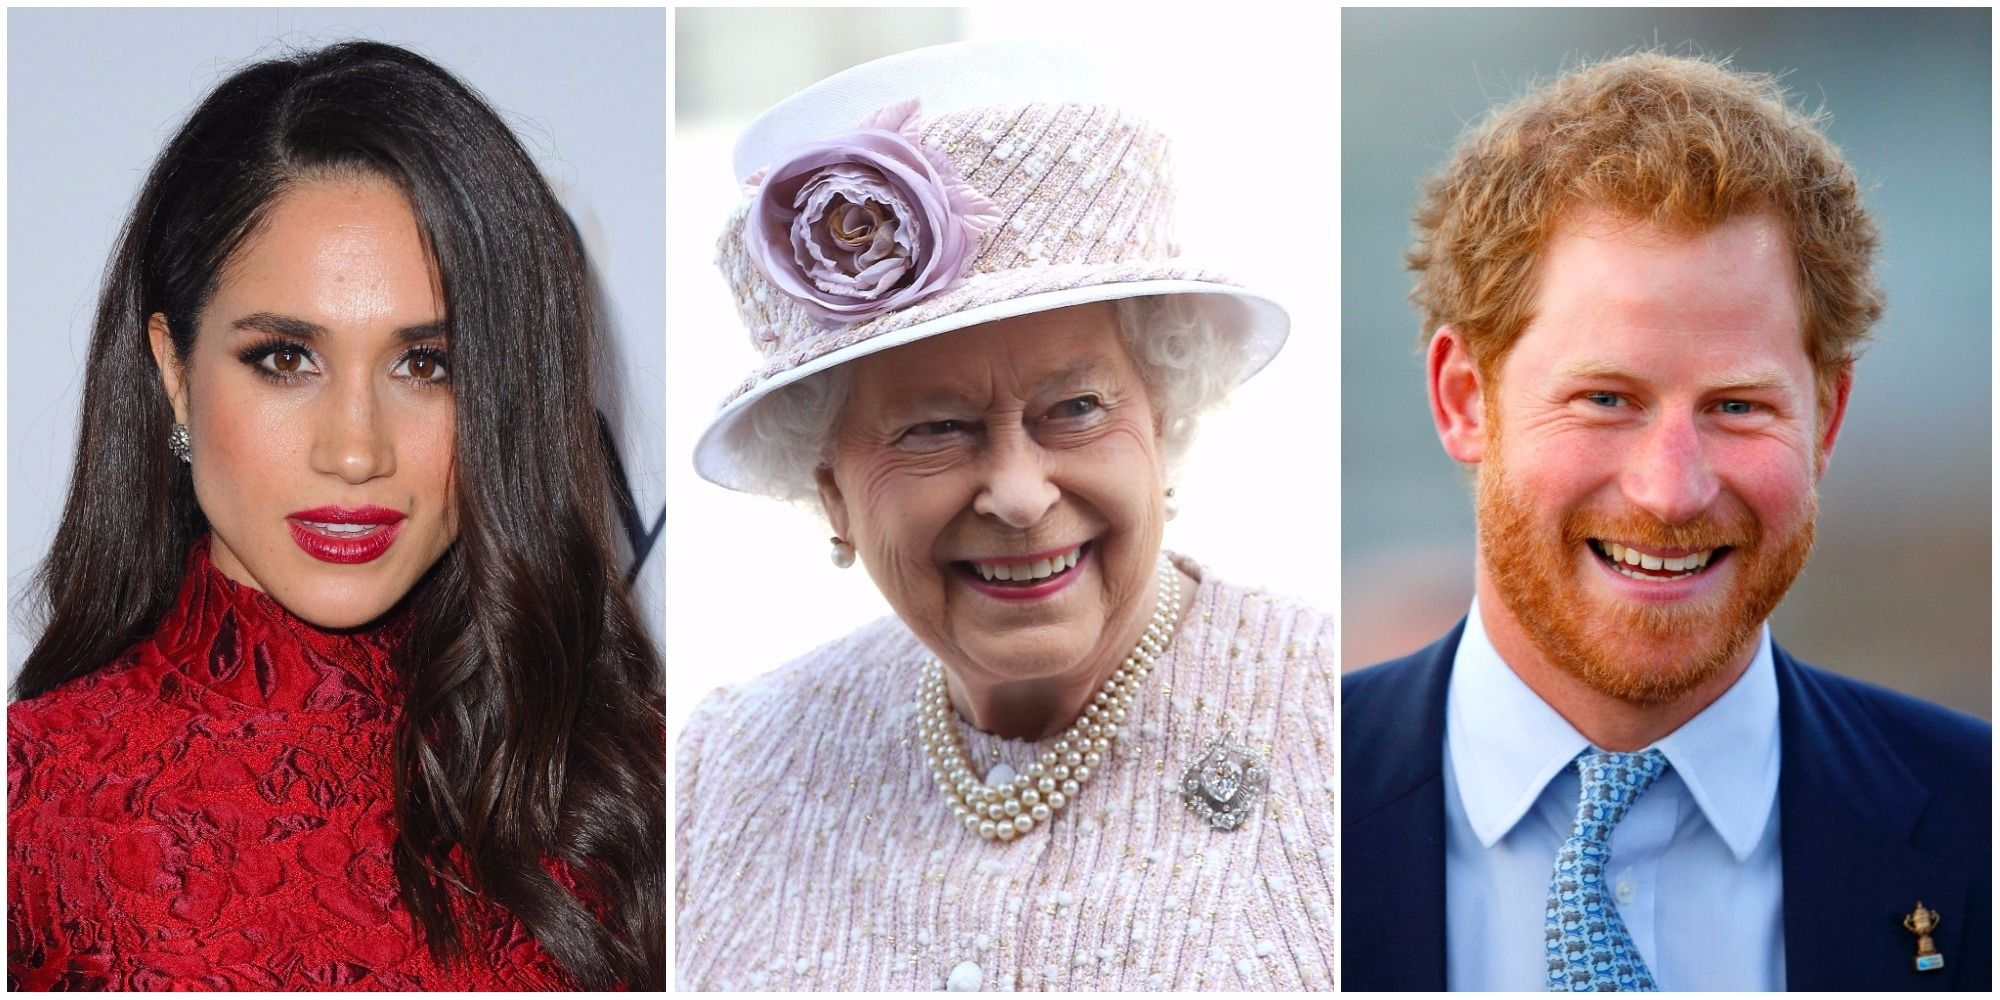 Meghan Markle Has Reportedly Met Queen Elizabeth II